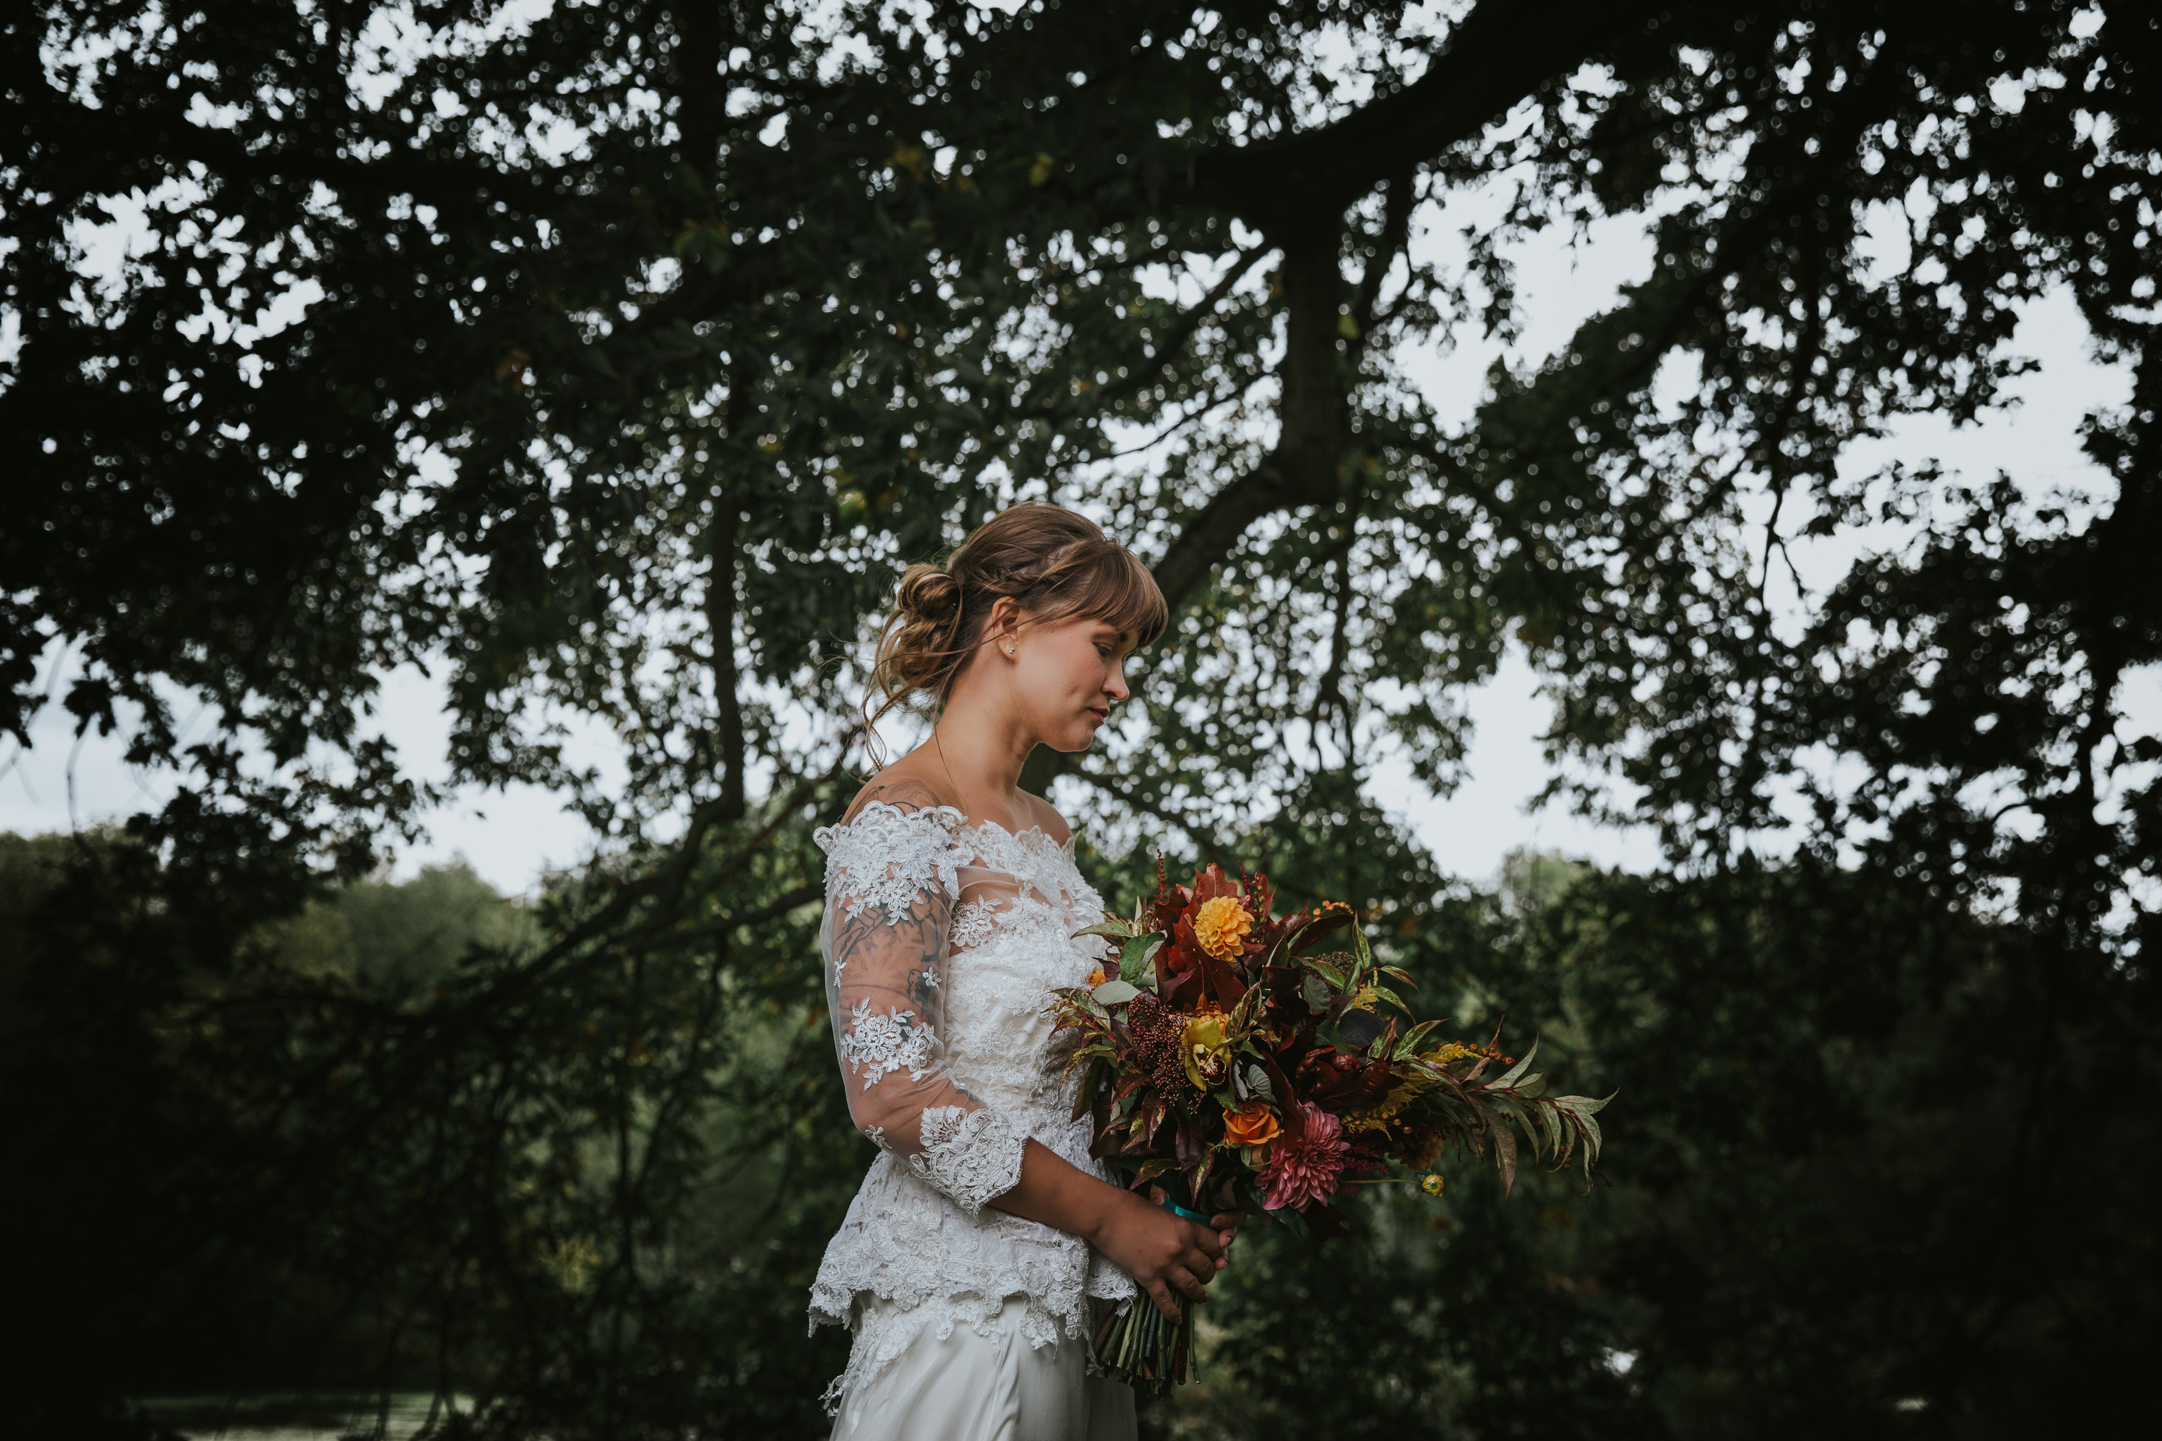 Esther_Wild_Little_Horse_Box_Norfolk_Wedding_IMG_3199.jpg